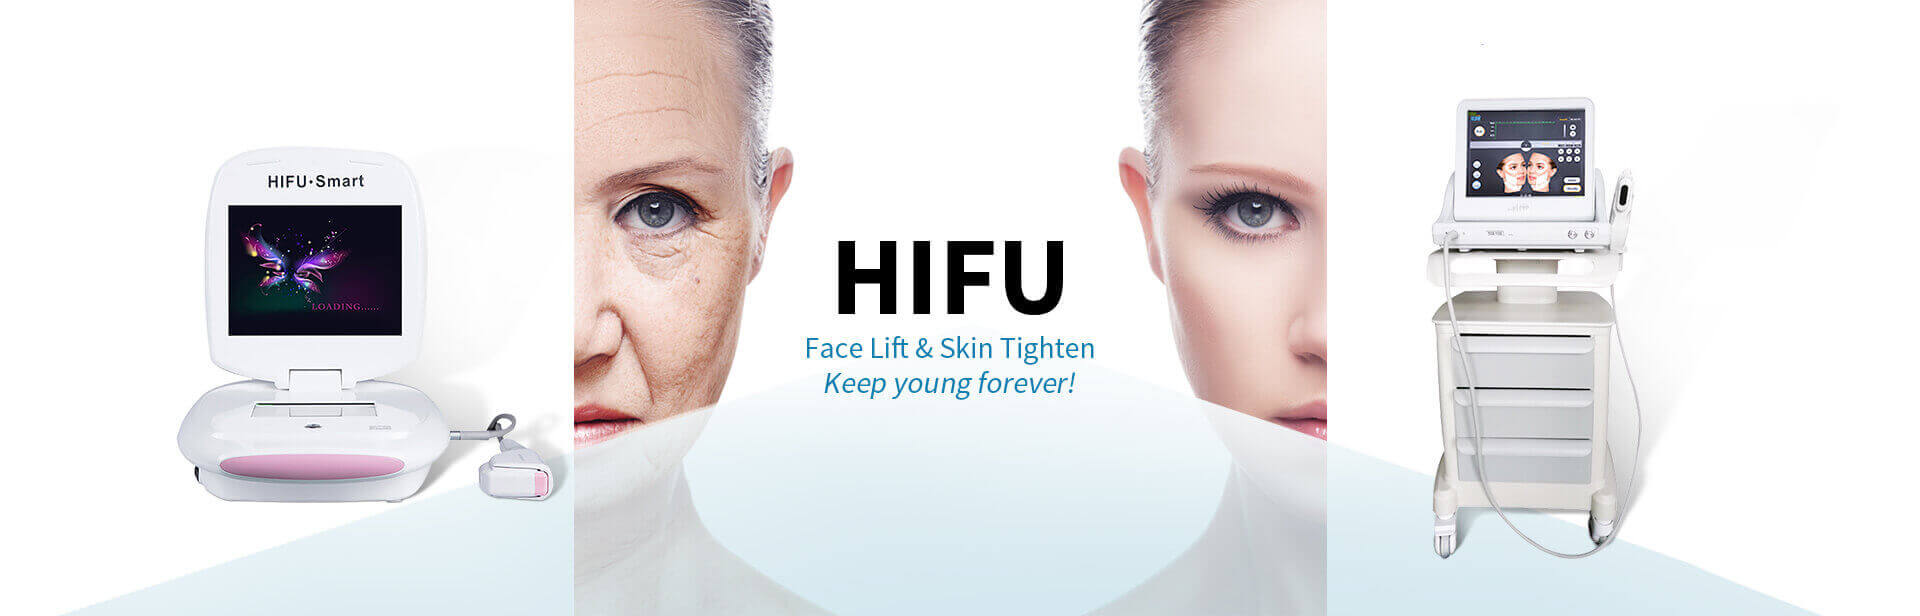 HIFU face lift skin tightening wrinkle removal beauty salon equipment